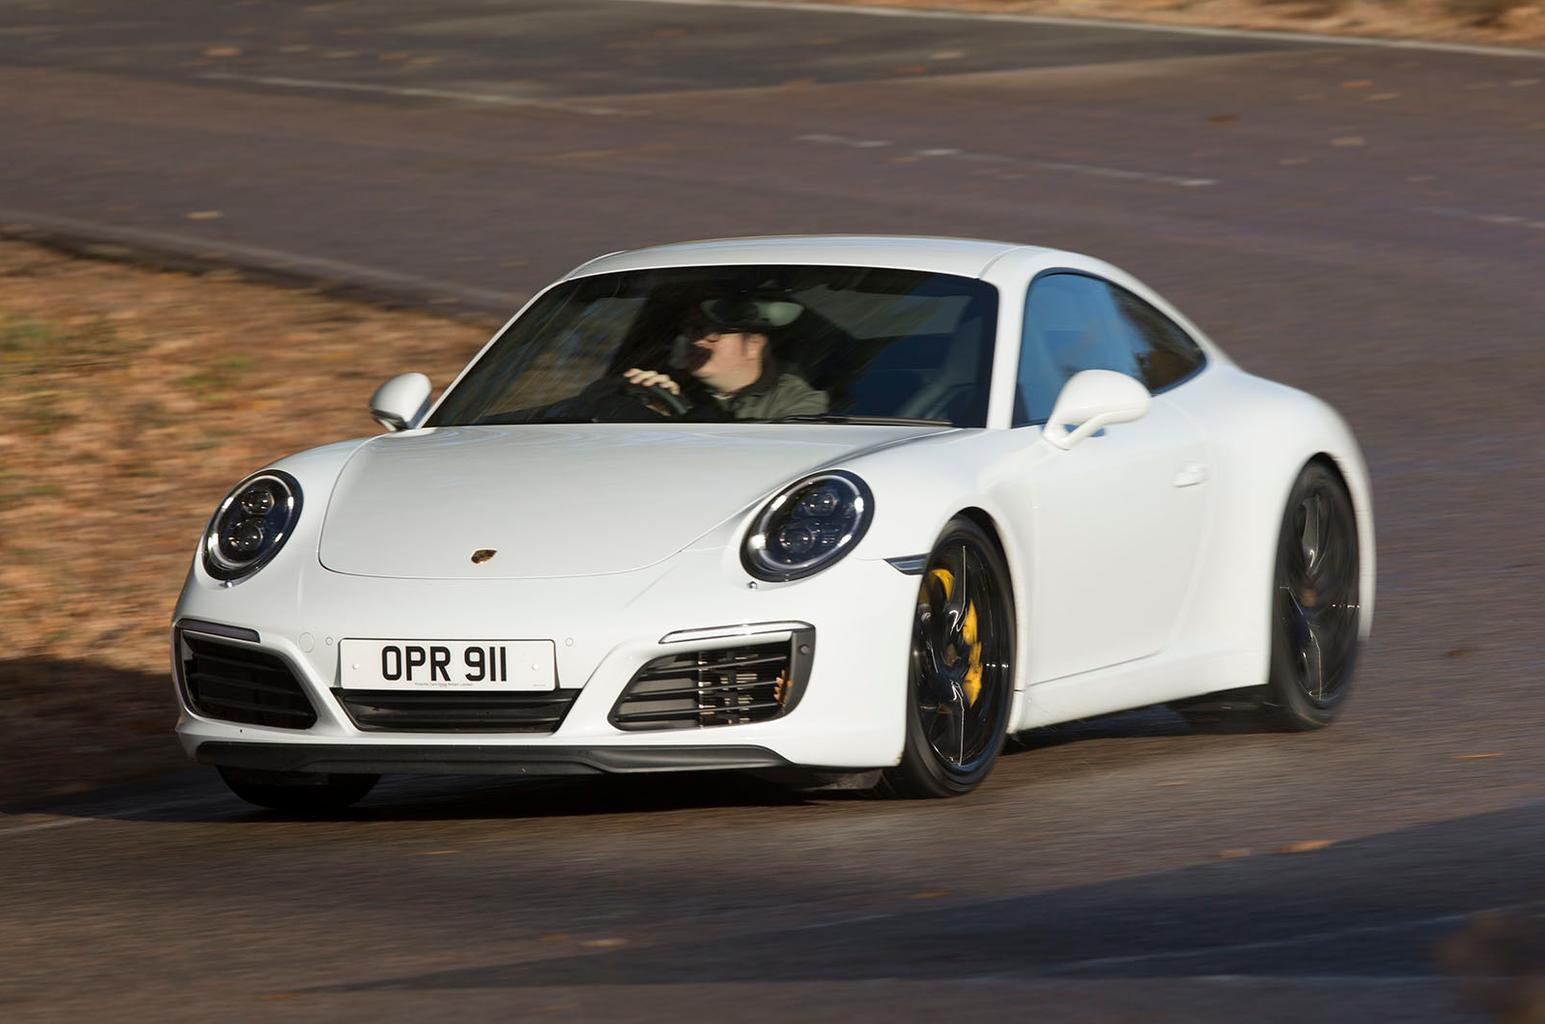 Used test: Jaguar F-Type vs Porsche 911